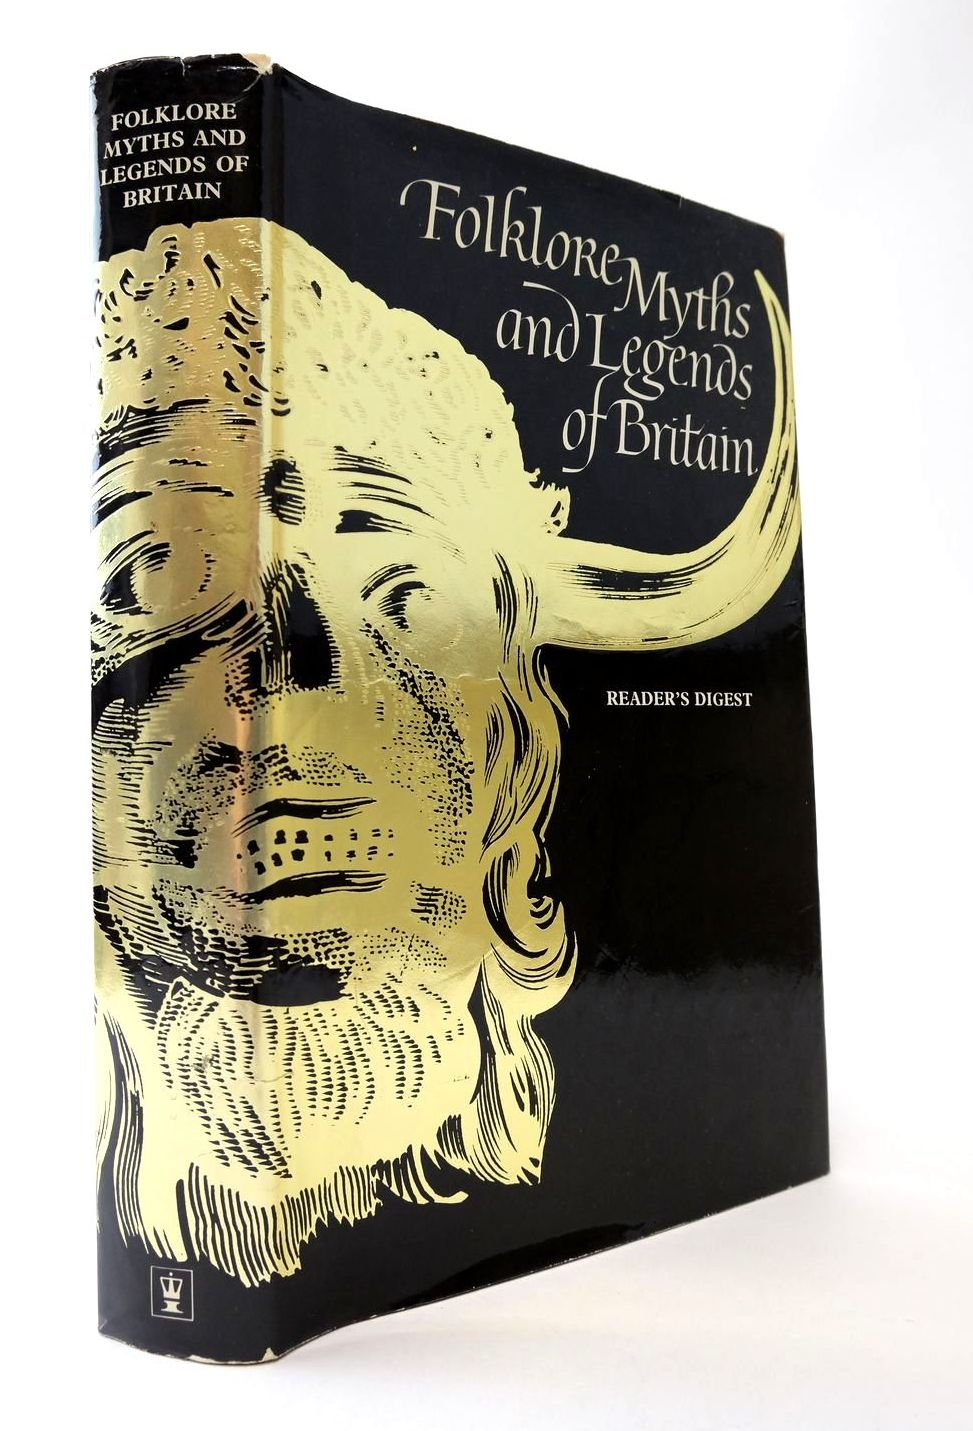 Photo of FOLKLORE, MYTHS AND LEGENDS OF BRITAIN written by Ash, Russell et al, published by The Readers' Digest Association Limited (STOCK CODE: 2132532)  for sale by Stella & Rose's Books